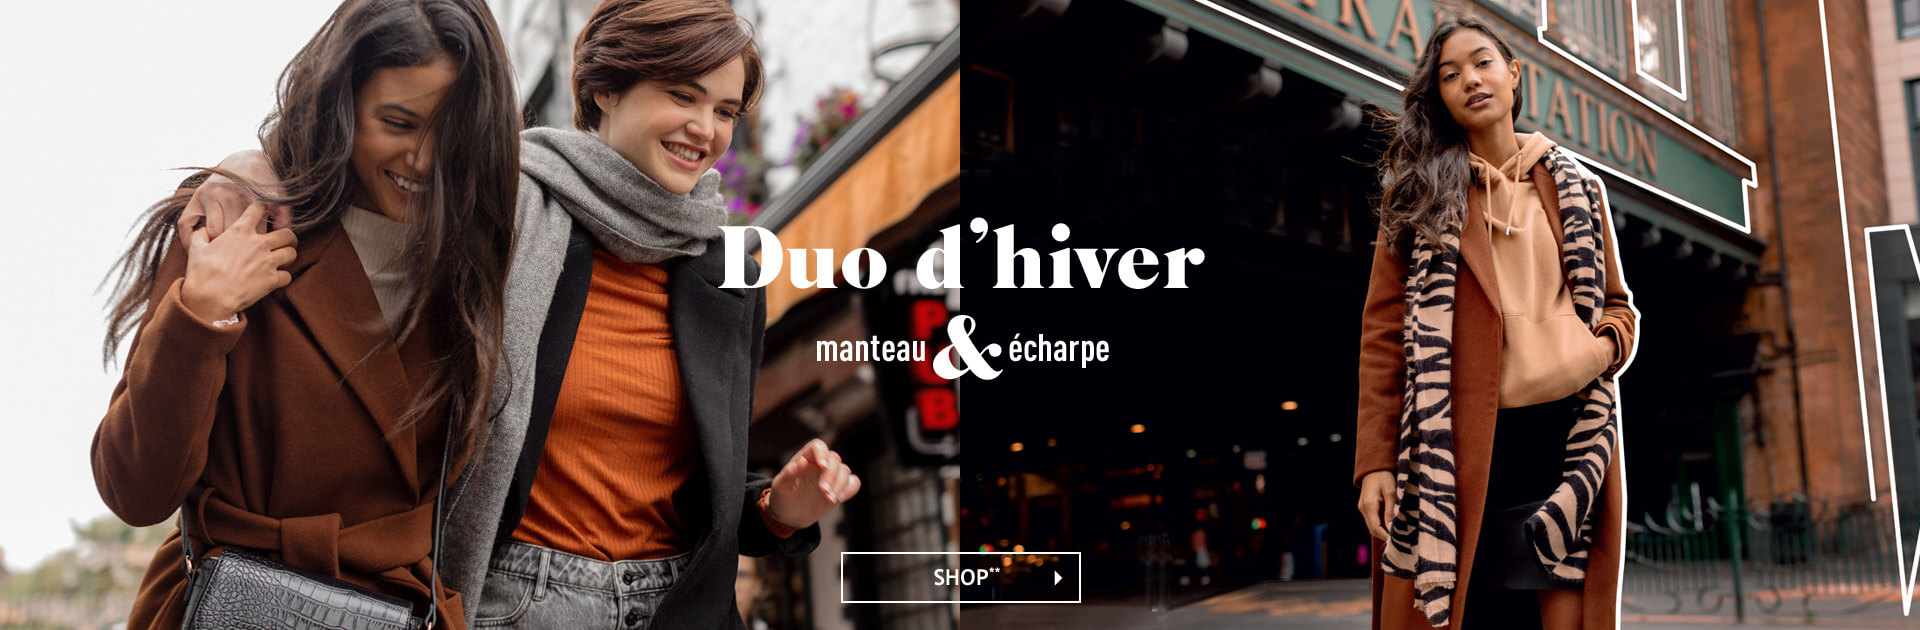 Duo d'hiver